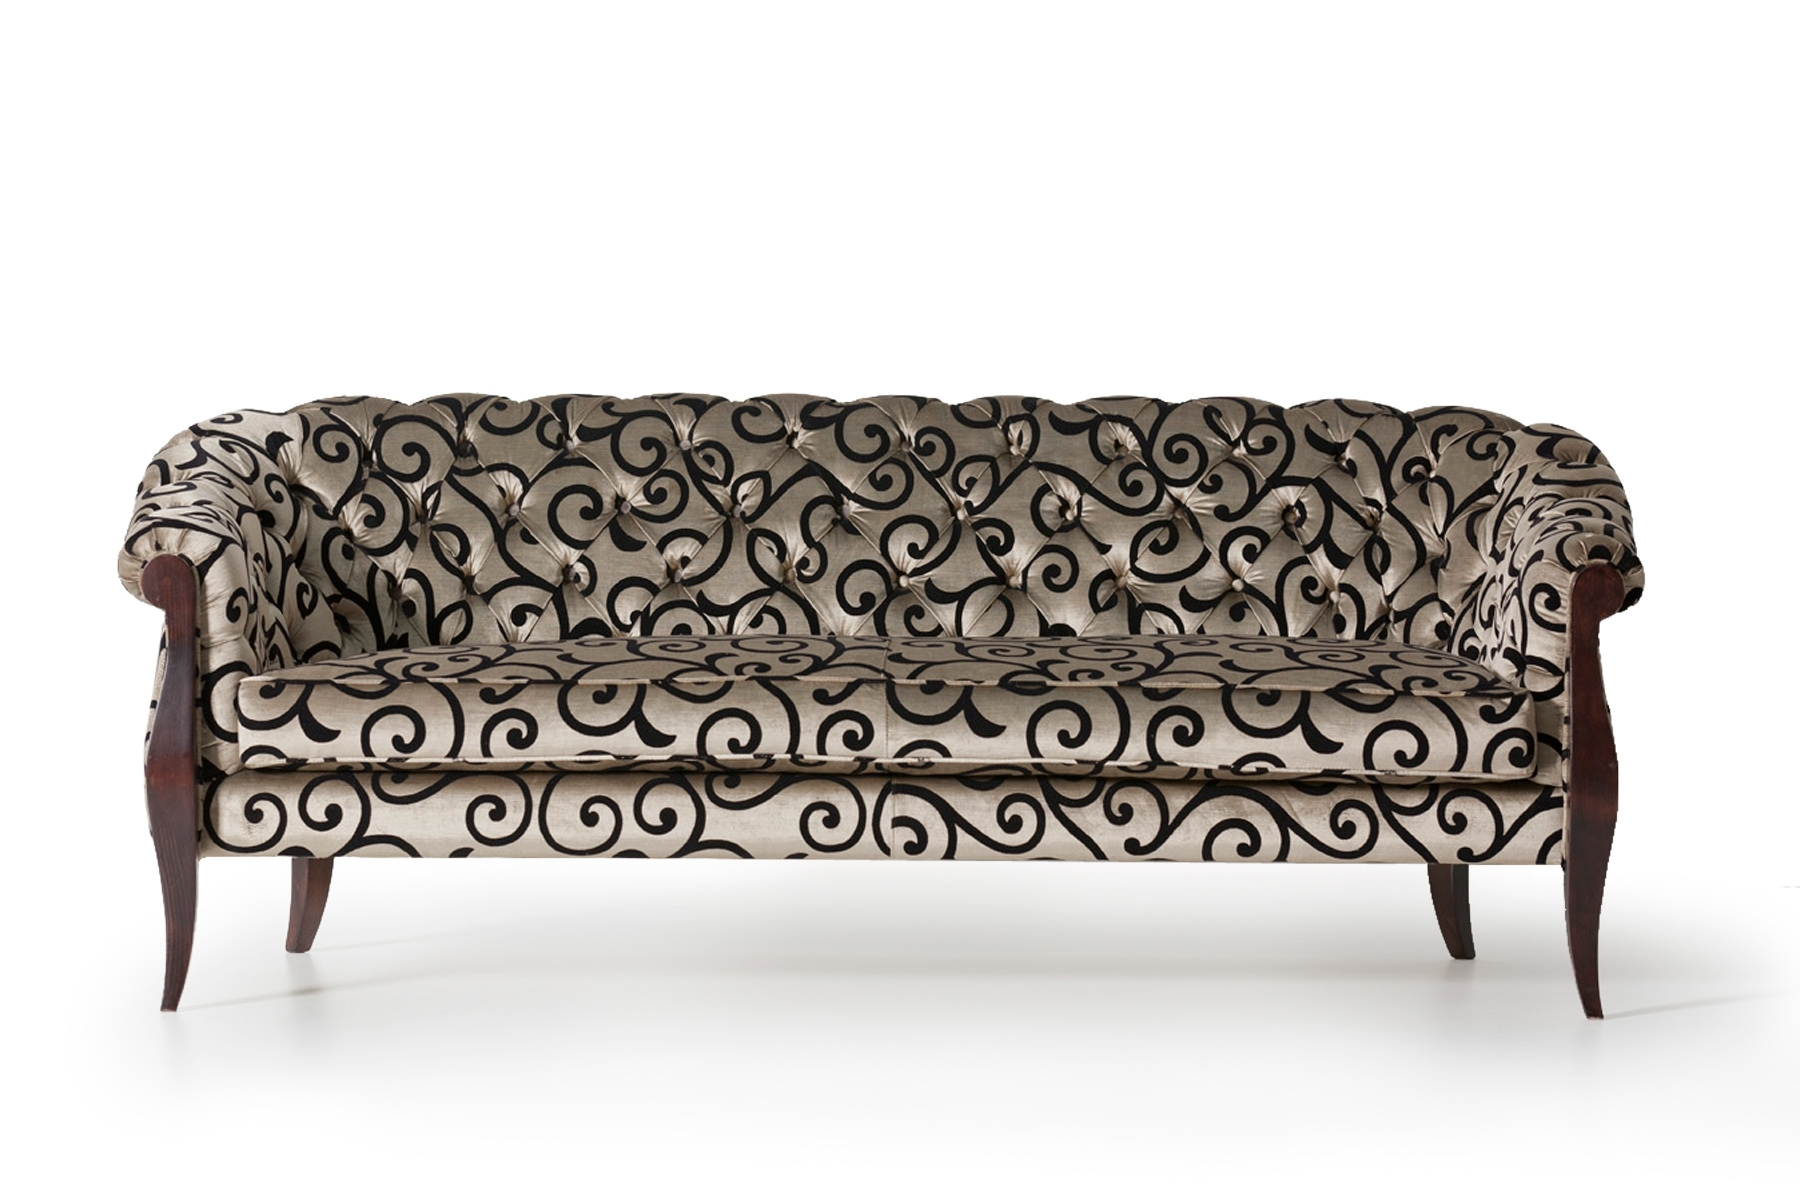 Sofa Design: Pillows Dreamstime Classic Sofas Isolated Handmade Pertaining To Best And Newest Classic Sofas (View 18 of 20)